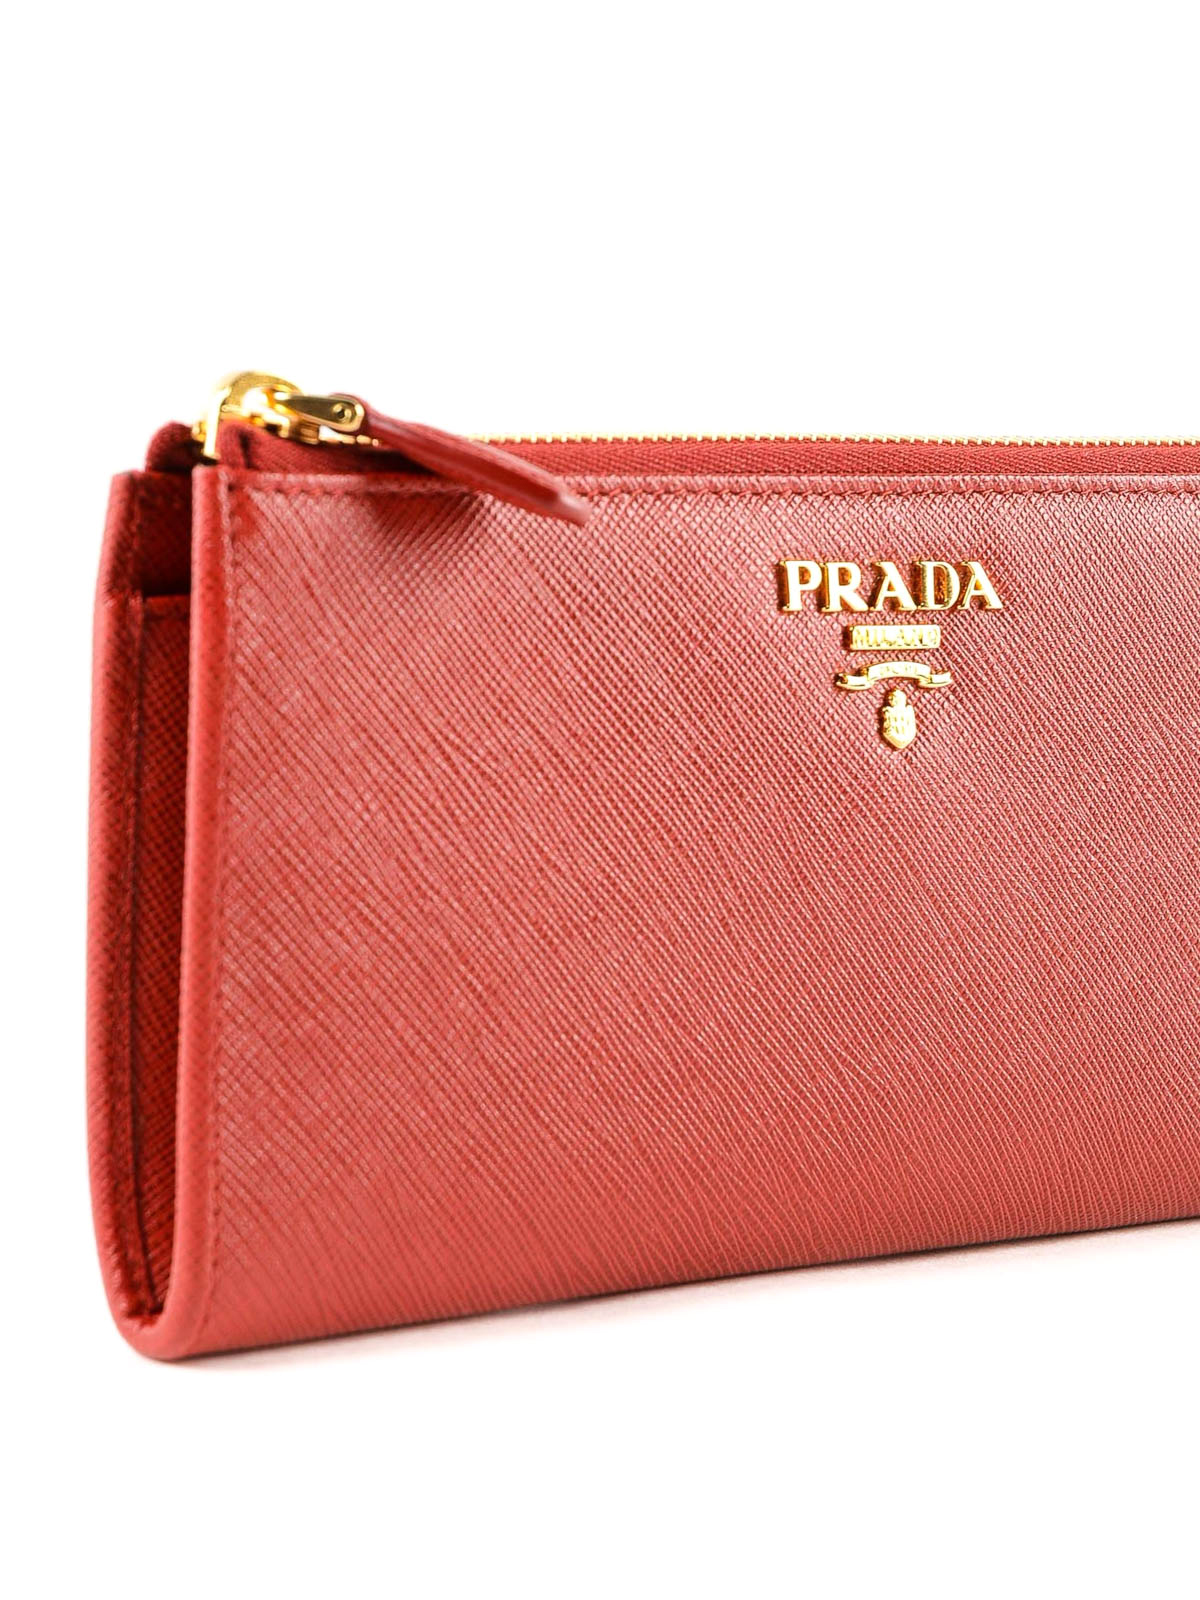 4acf651b5571 Prada - Red saffiano leather continental cardholder - wallets ...